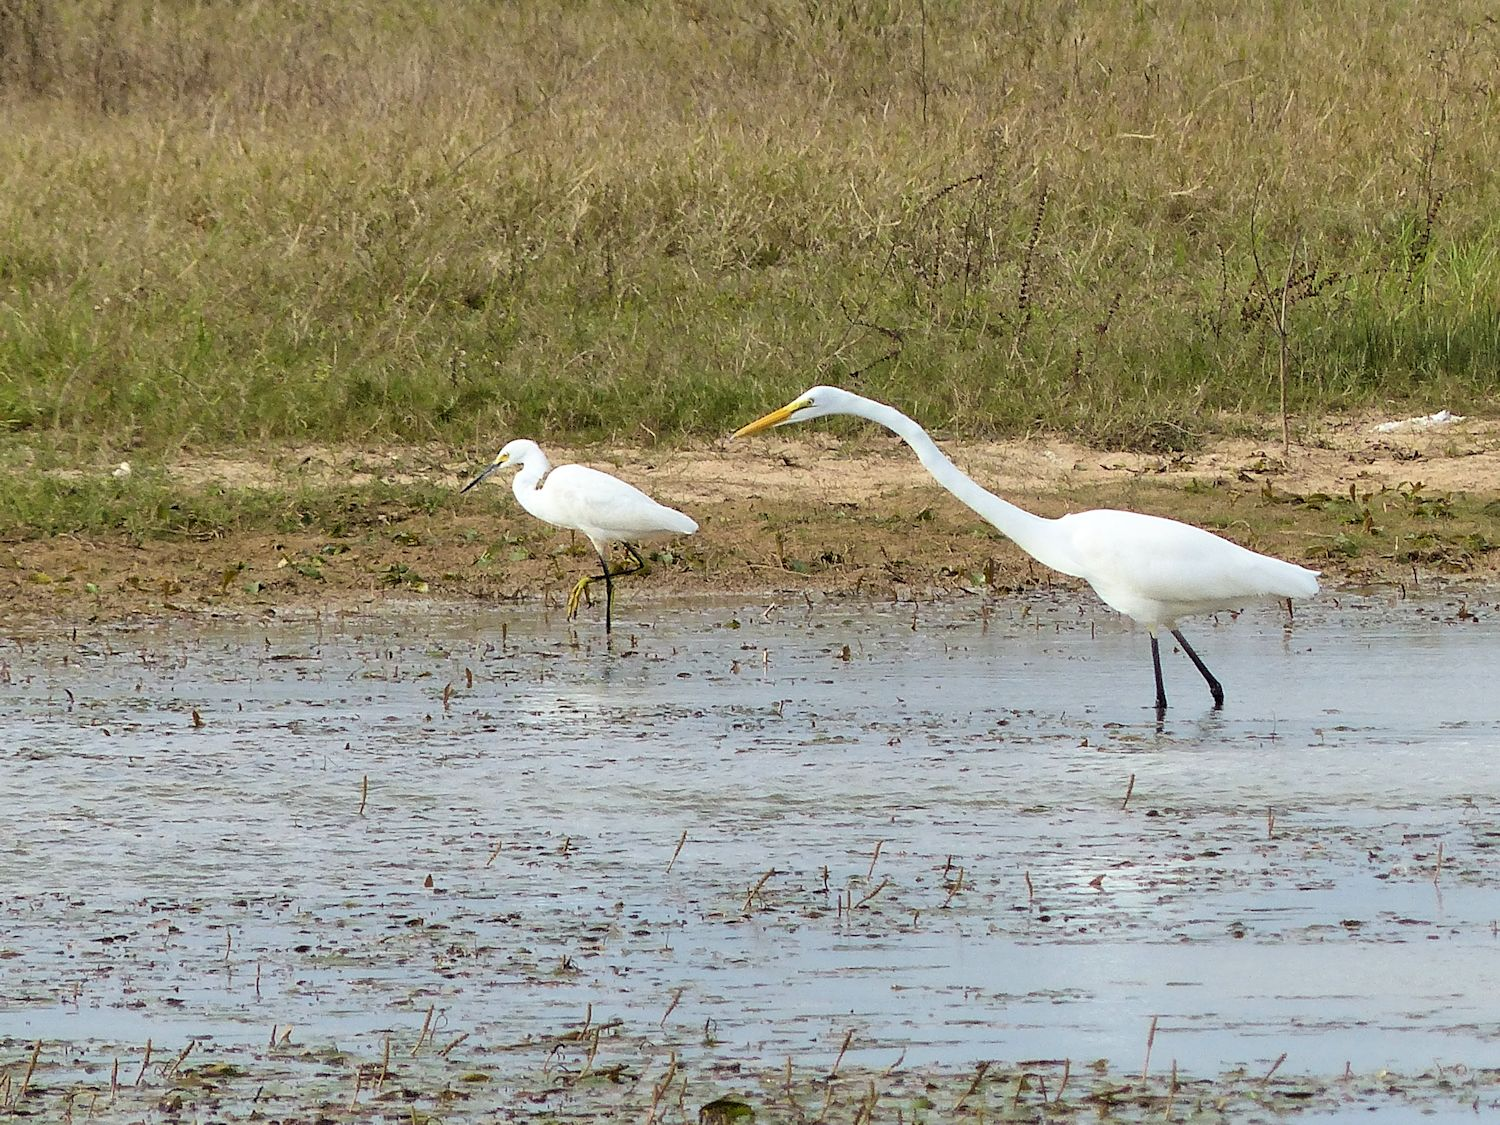 Great Egret turns and by-passes little guy stalking foods